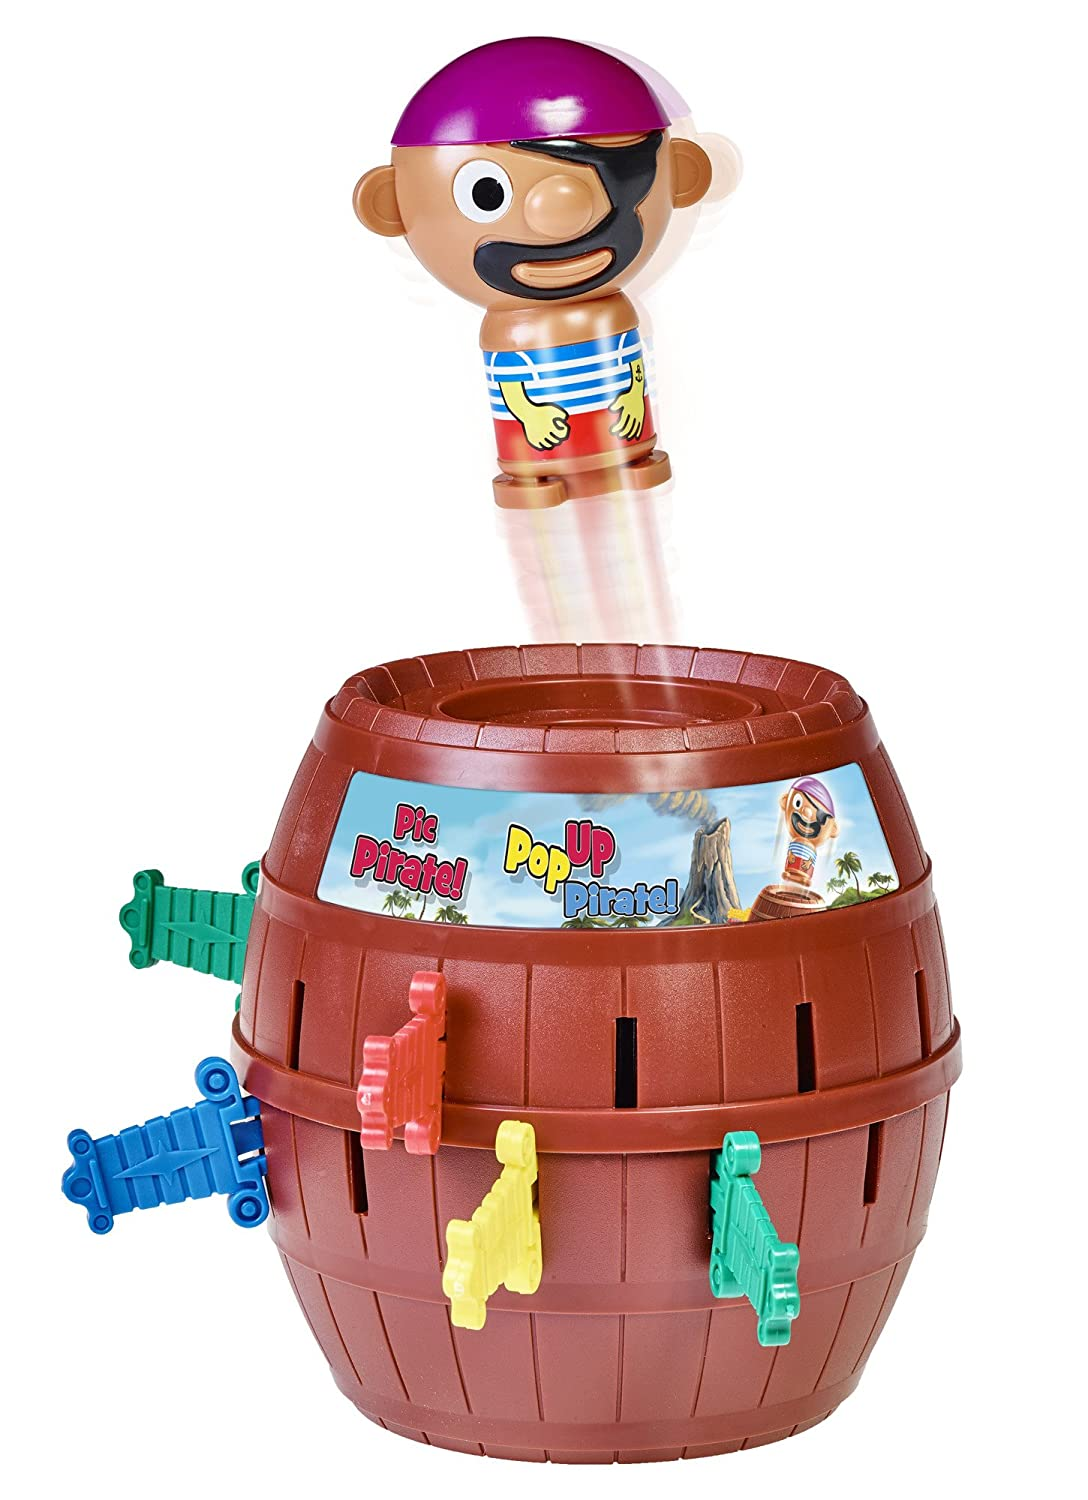 image of the Pop-up Pirate toy in red color for boys